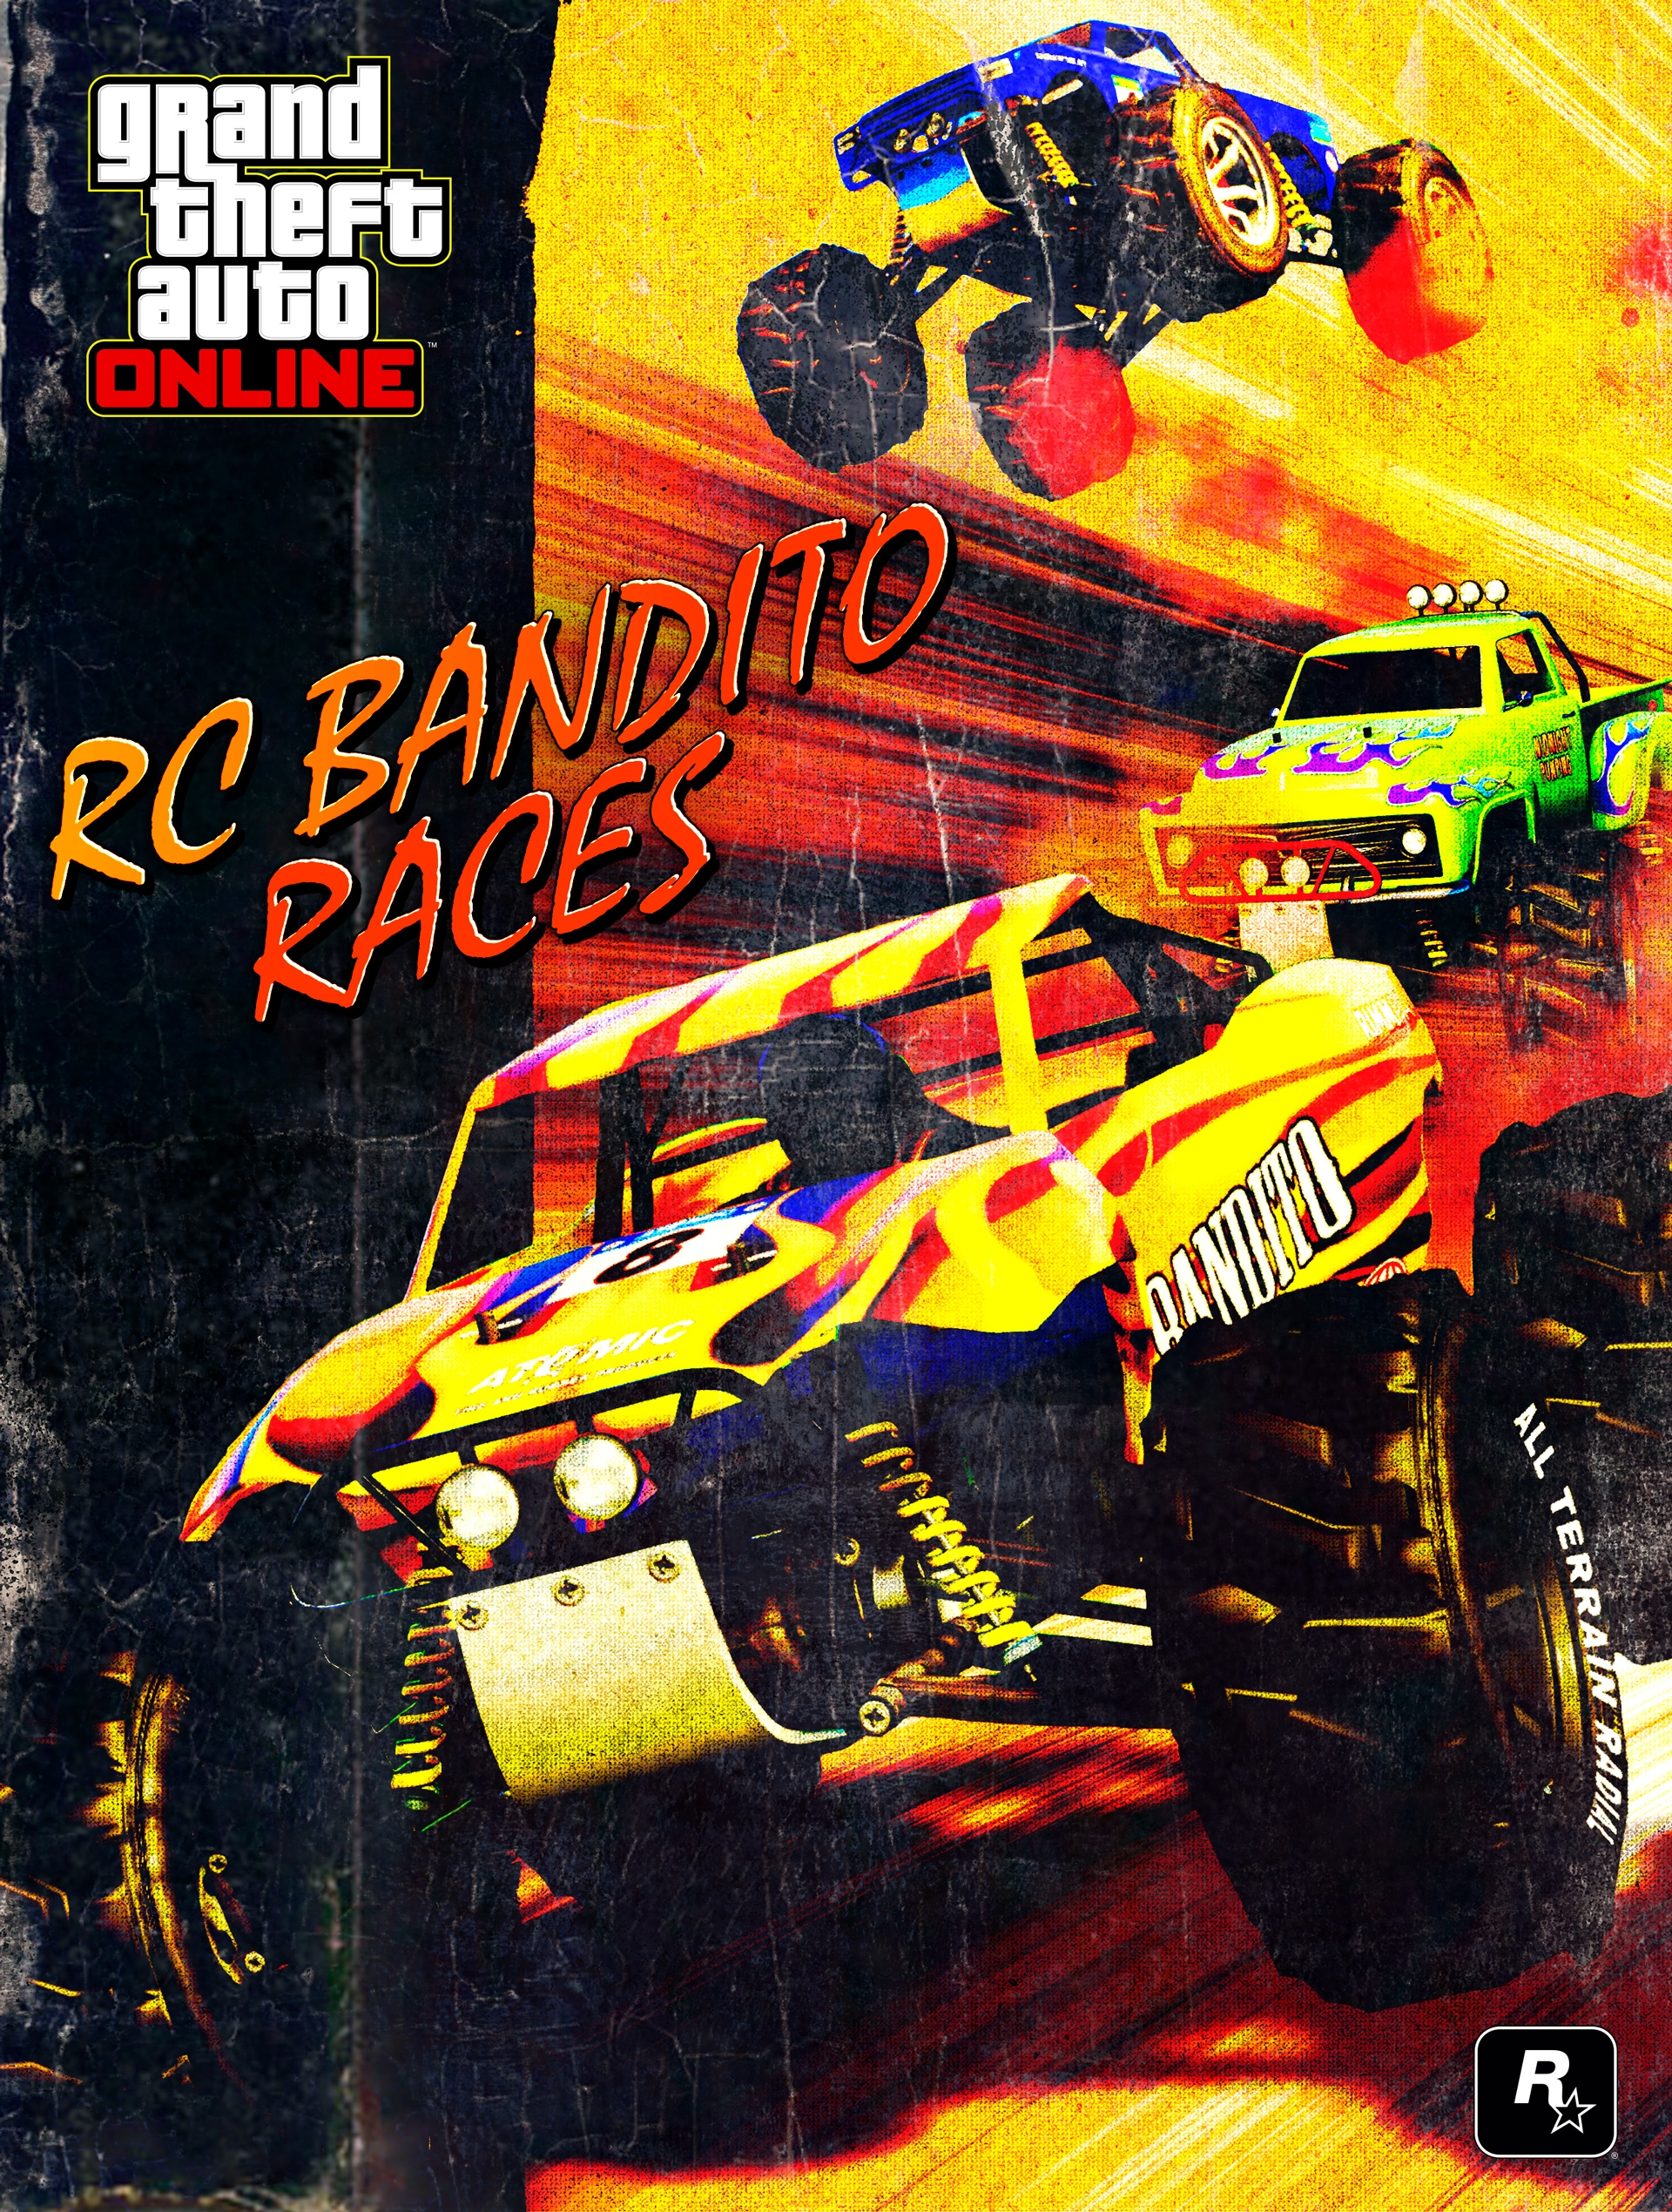 GTA Online: the RC Bandito with Eight All-New Races & more